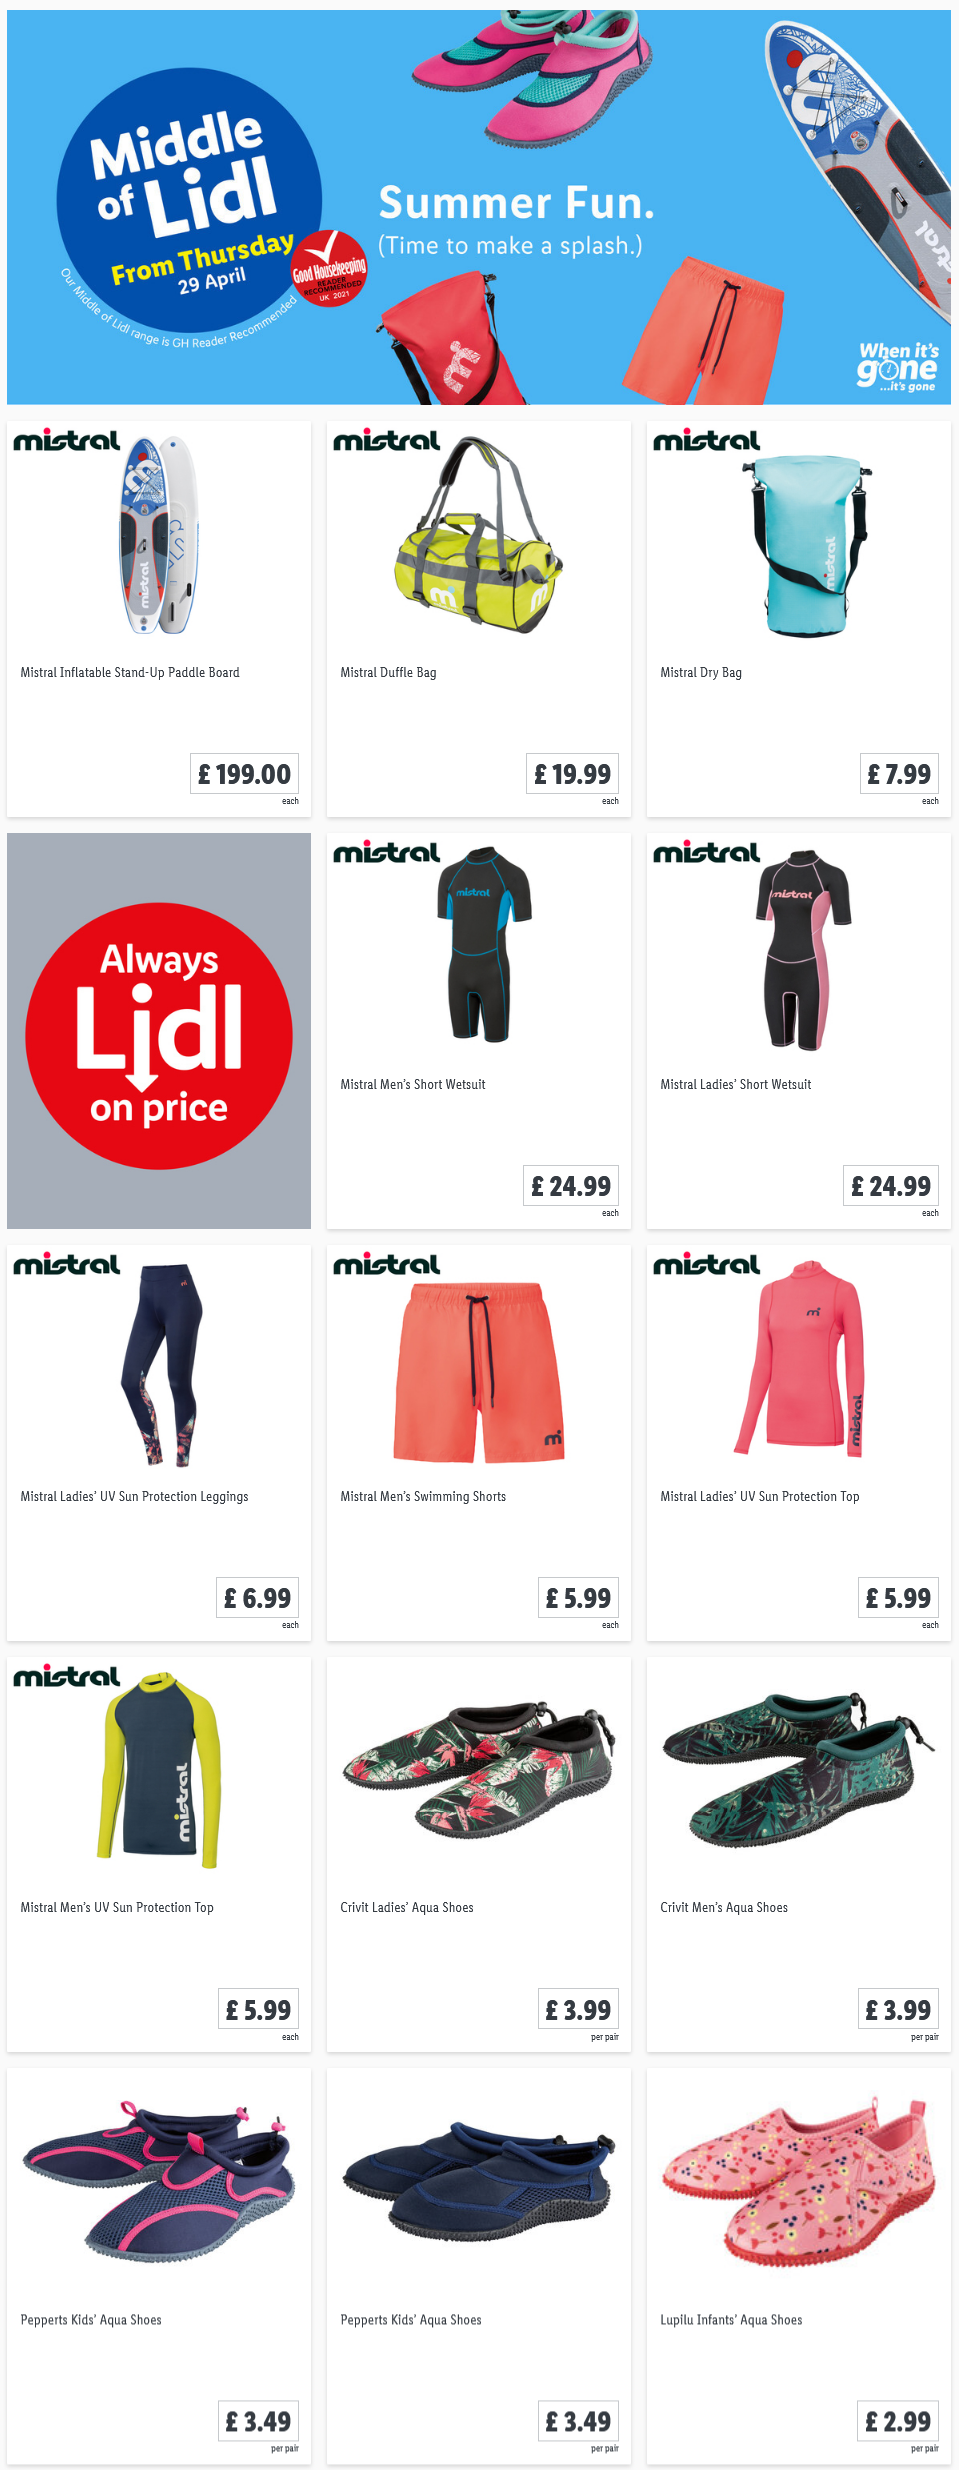 LIDL Offers this Thursday From 29th April 2021 LIDL Summer Fun